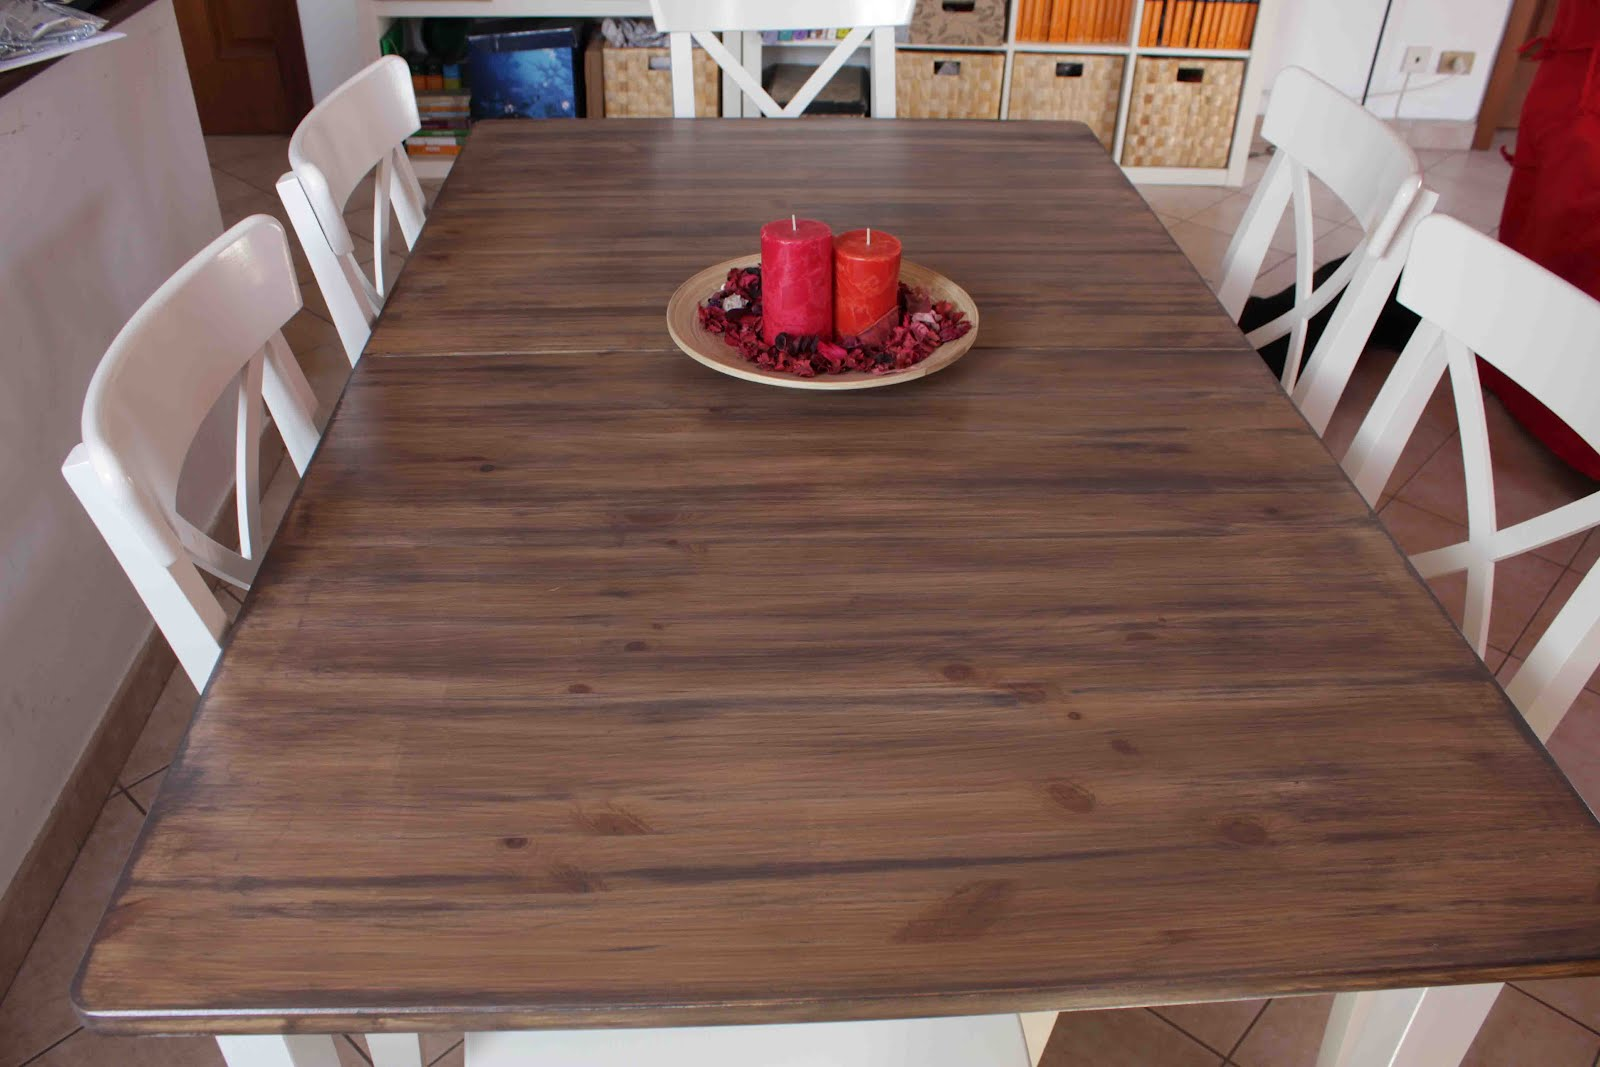 hack a country kitchen style dining table - ikea hackers - ikea